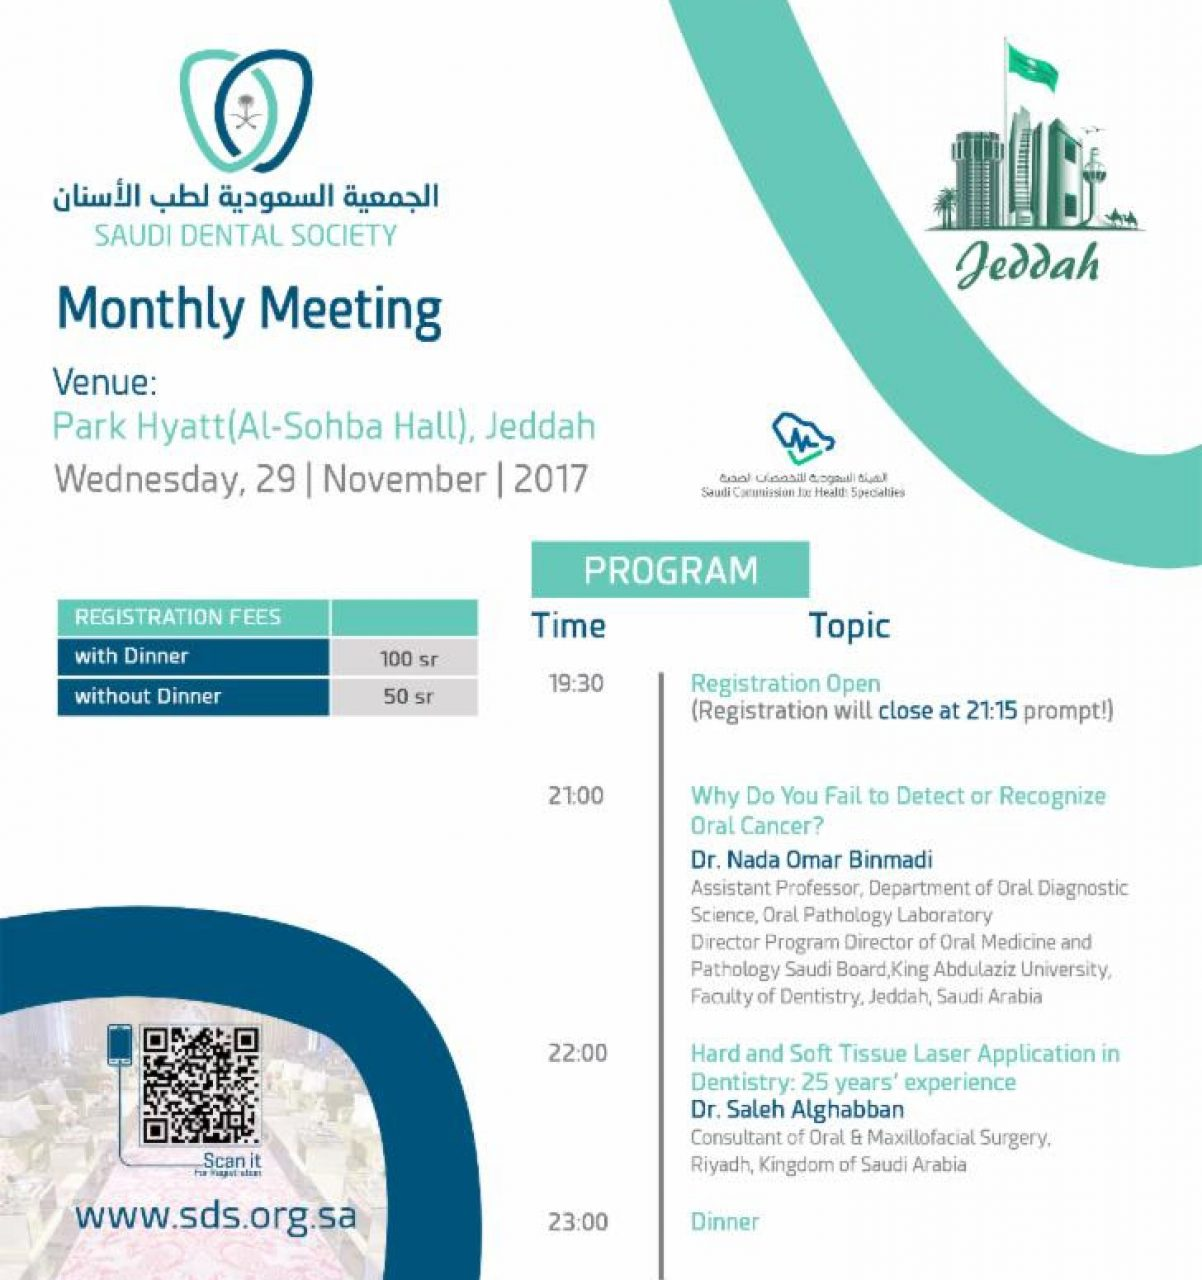 Monthly Meeting in Jeddah